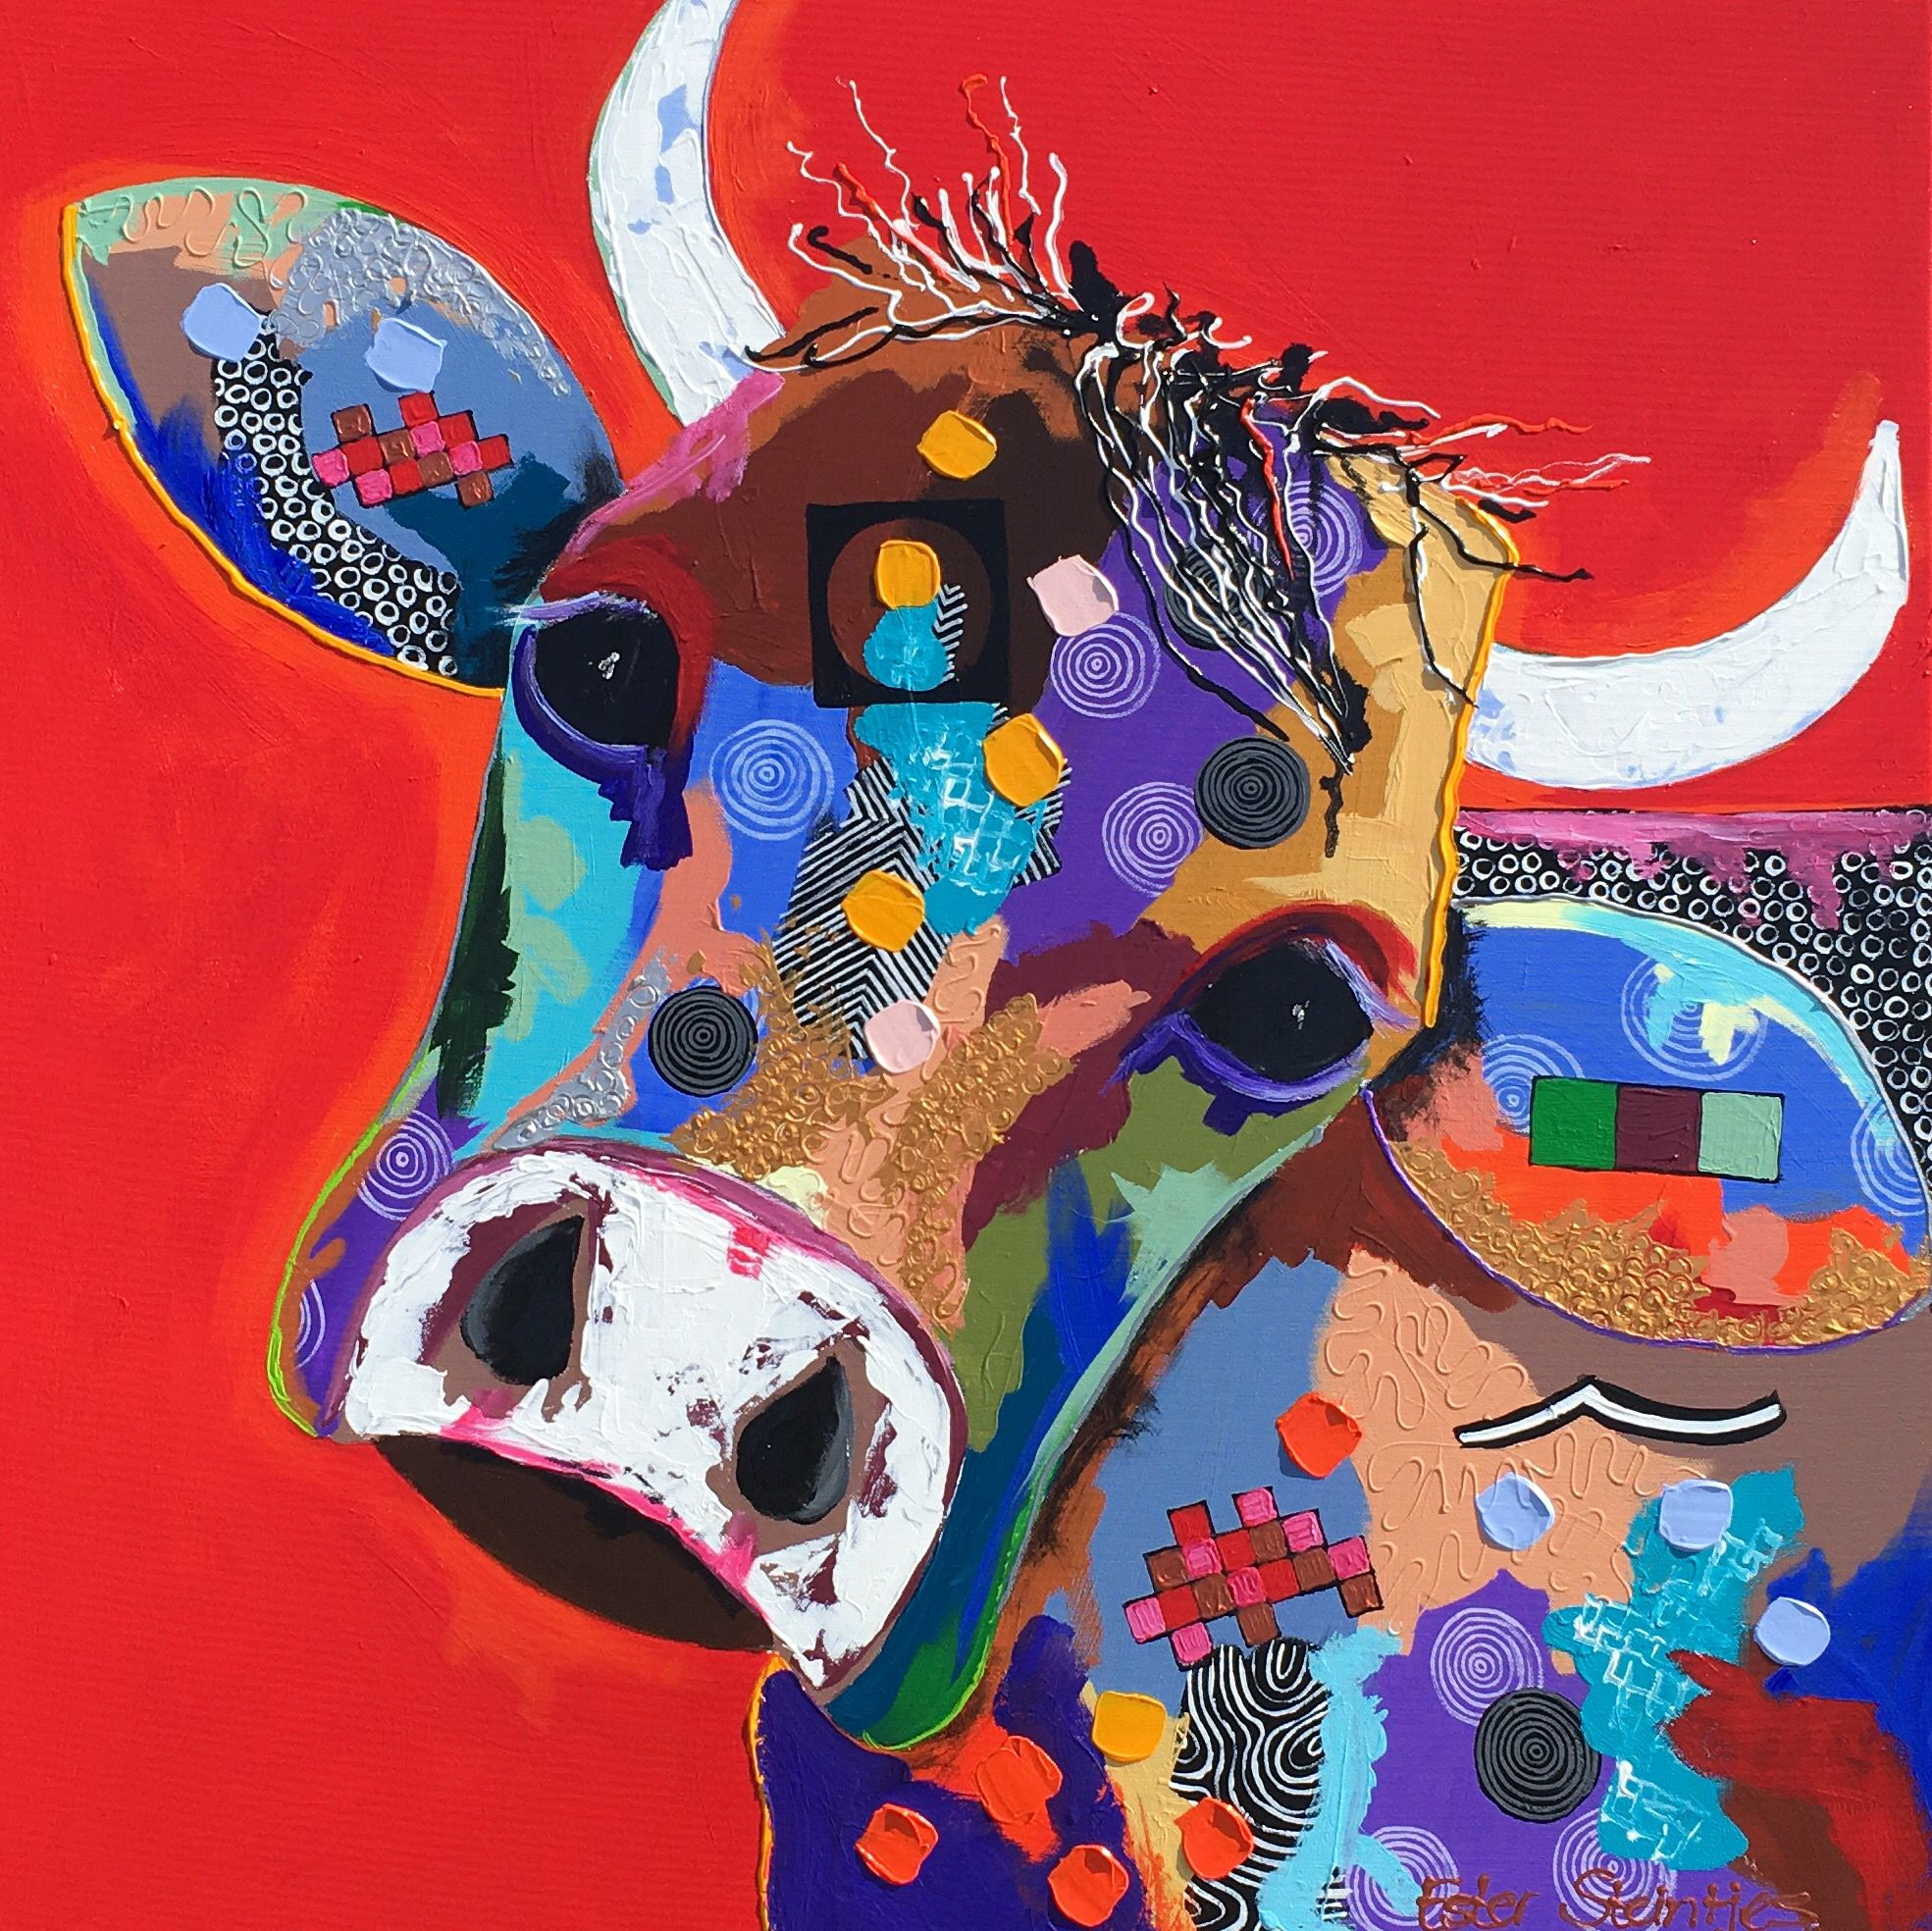 Kuh Malen Quothannah Quot Acrylic On Canvas Size 80x80 Cows Pinterest